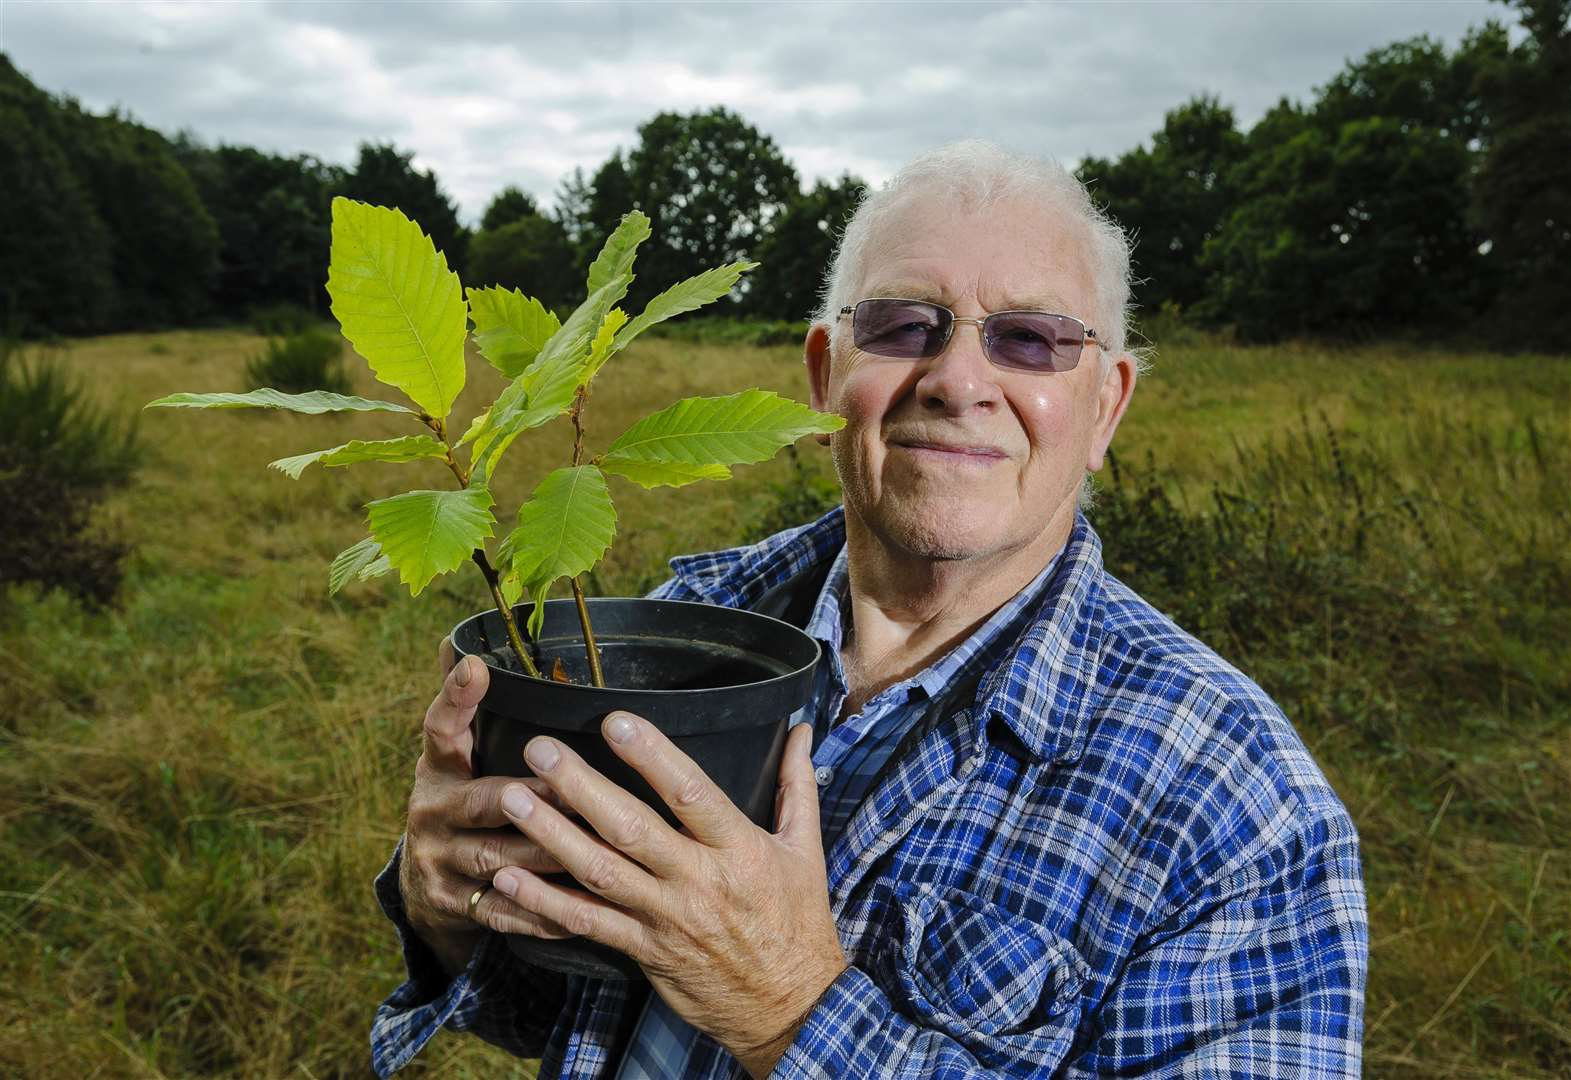 Villagers to plant 150 trees to tackle climate change